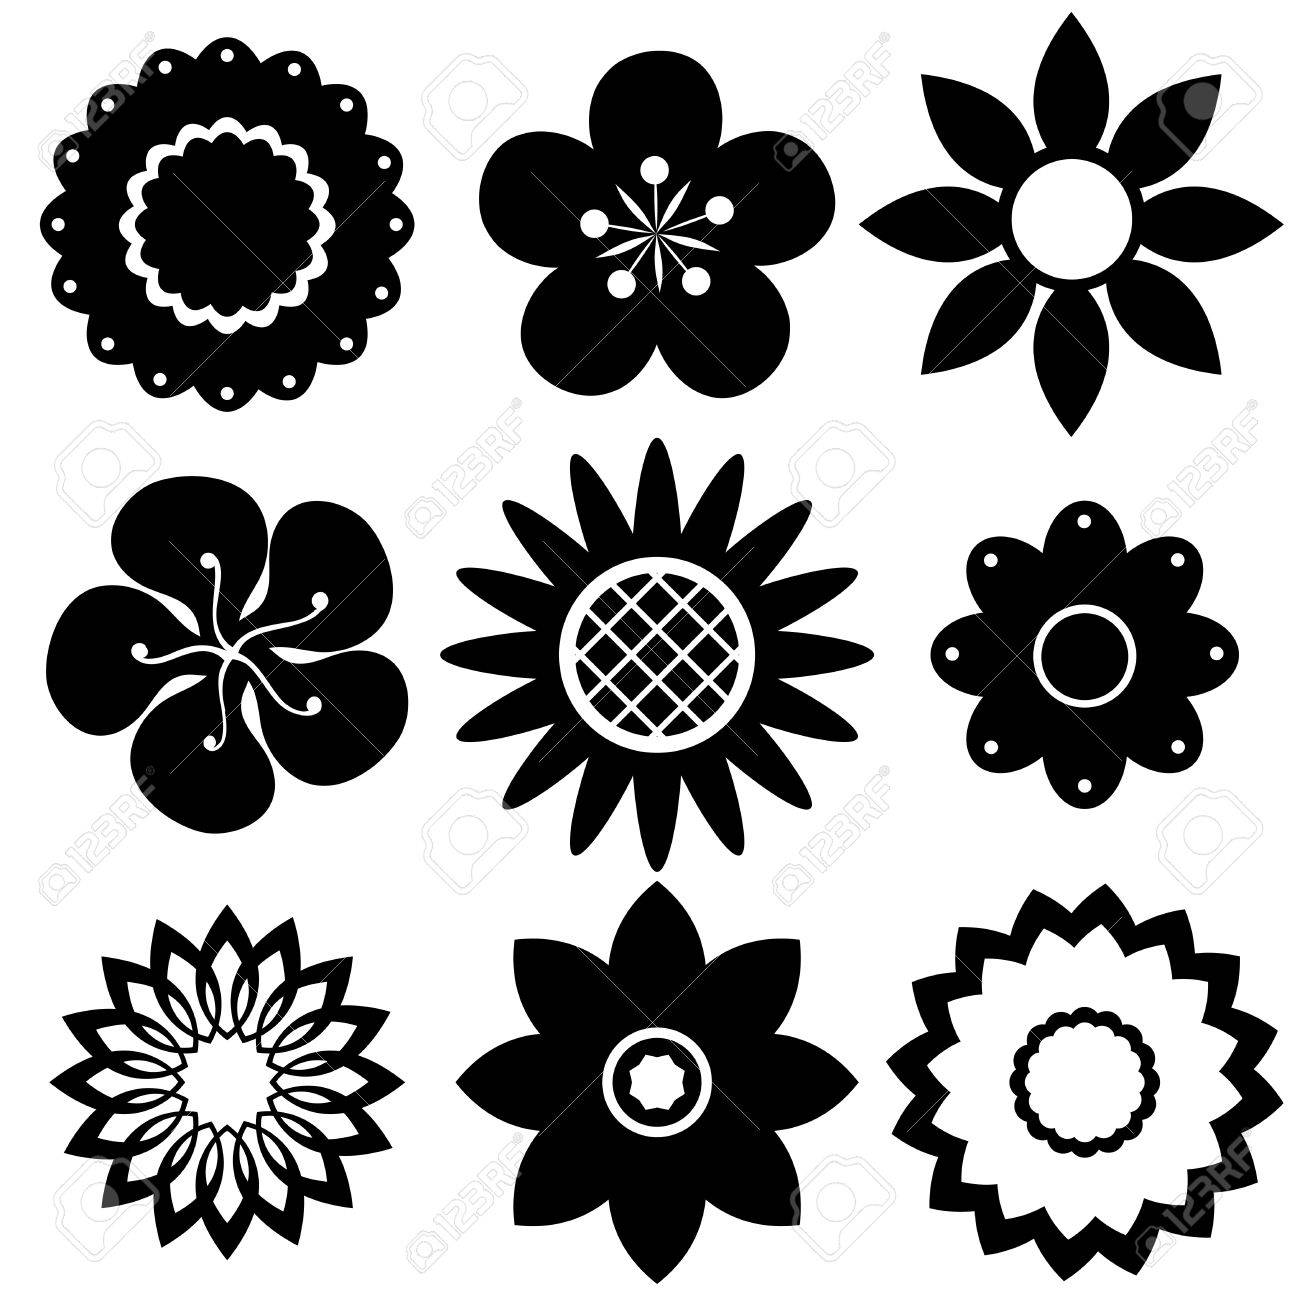 Black And White Flower Design Samples Royalty Free Cliparts Vectors